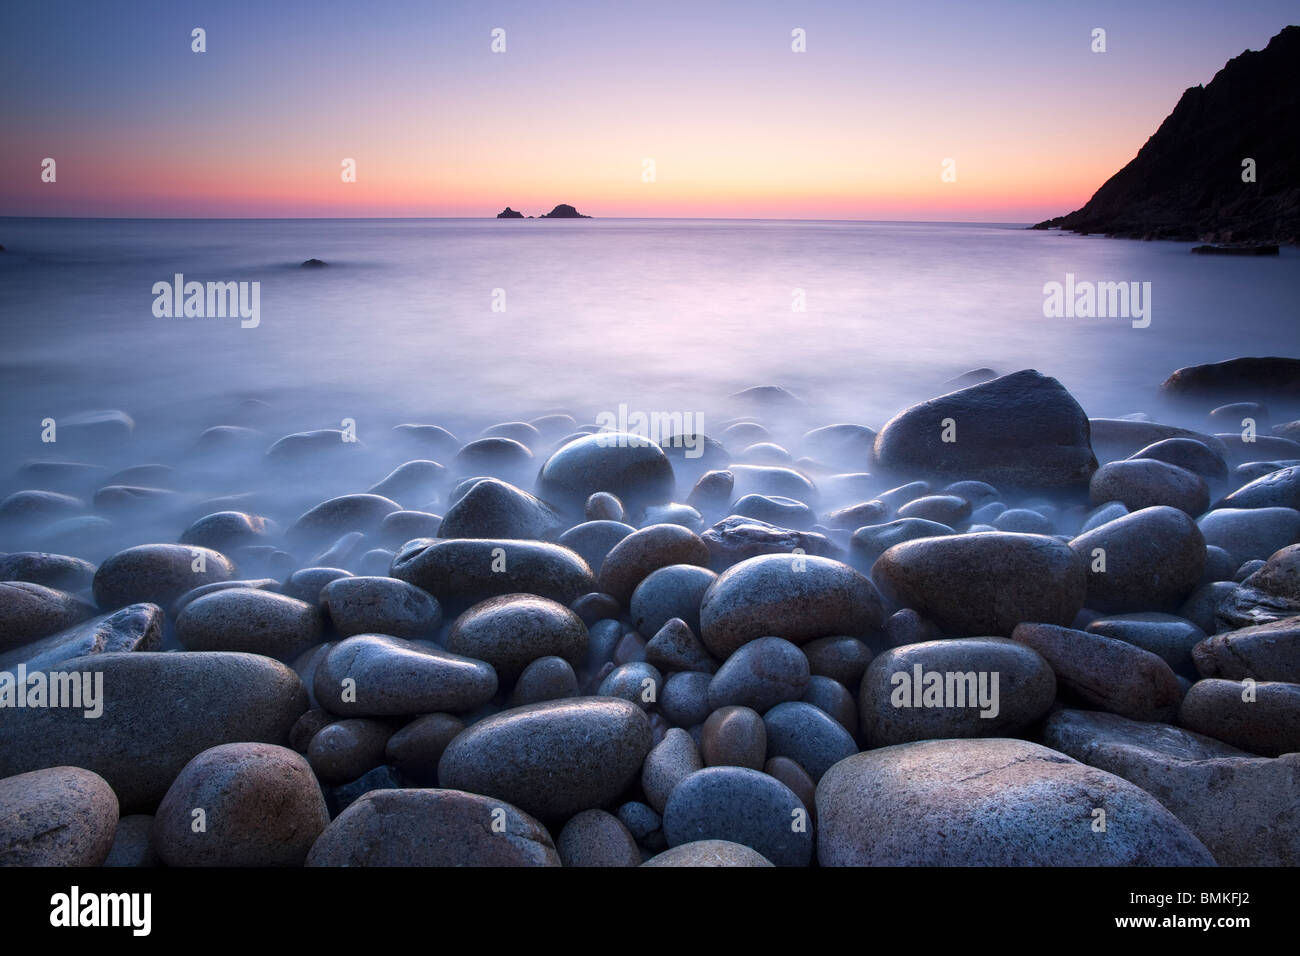 Boulders on beach at sunset Cornwall - Stock Image